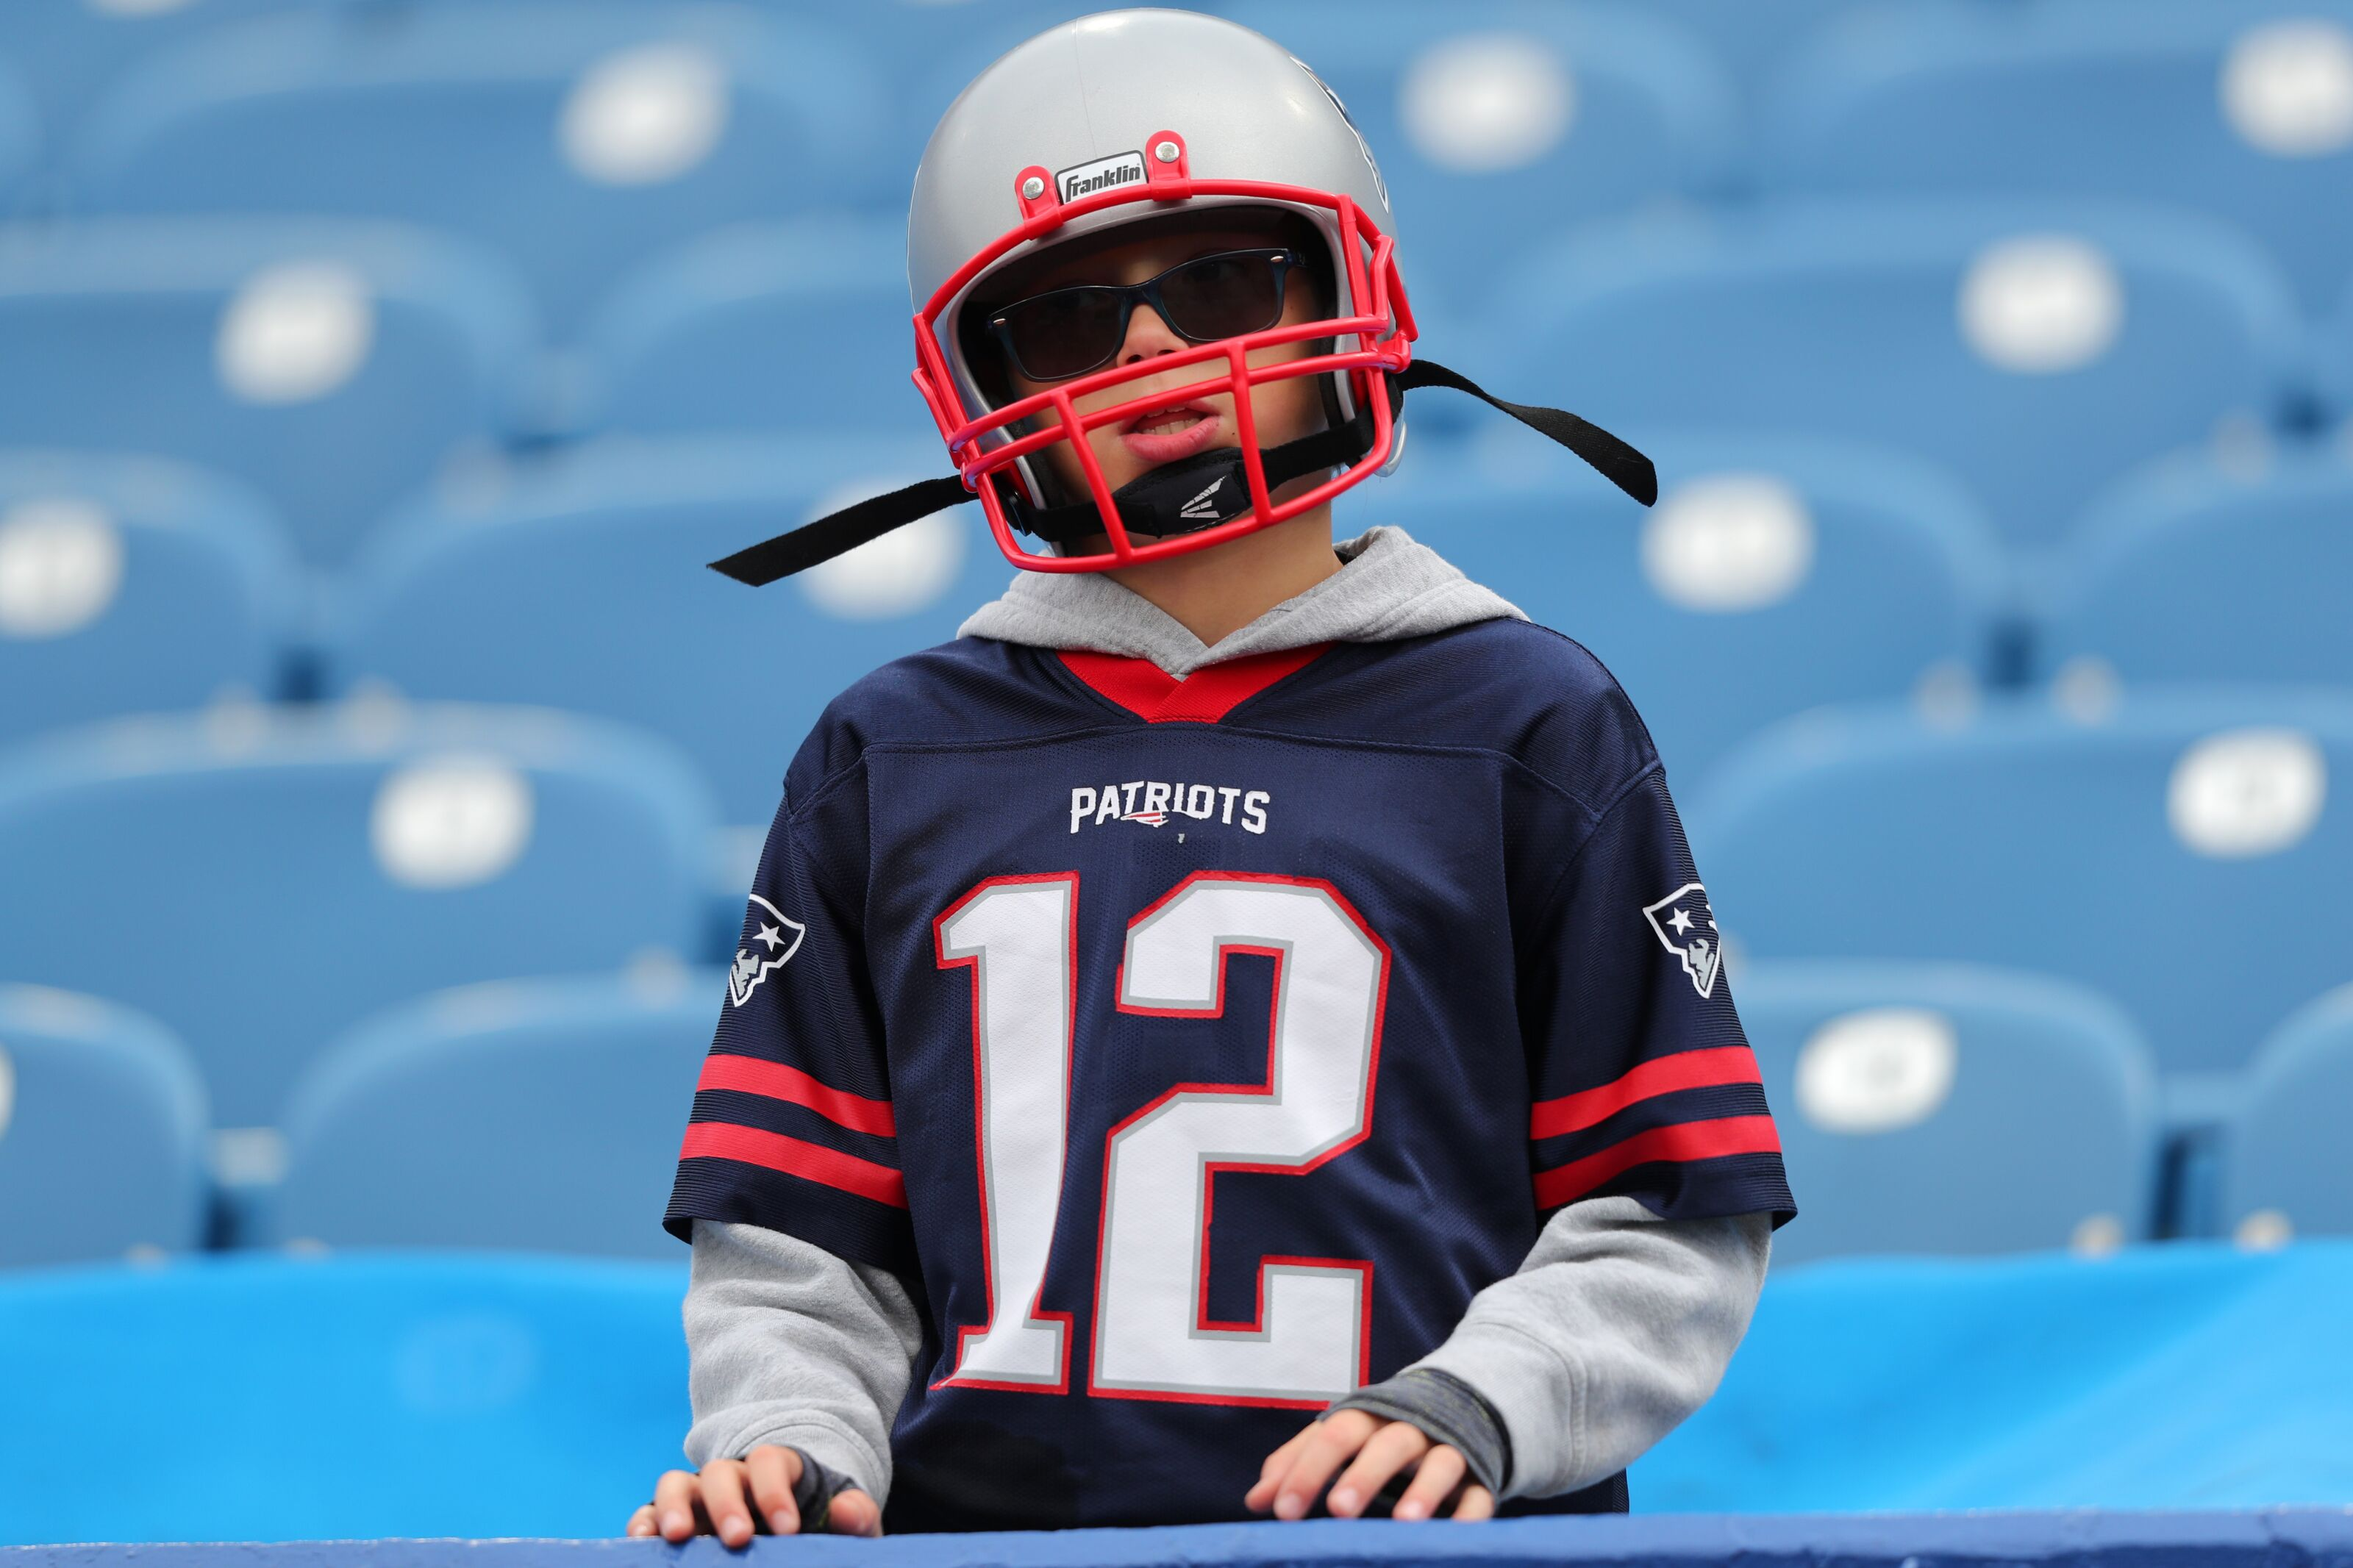 A Patriots fan guide to Week 6 in the NFL without New England